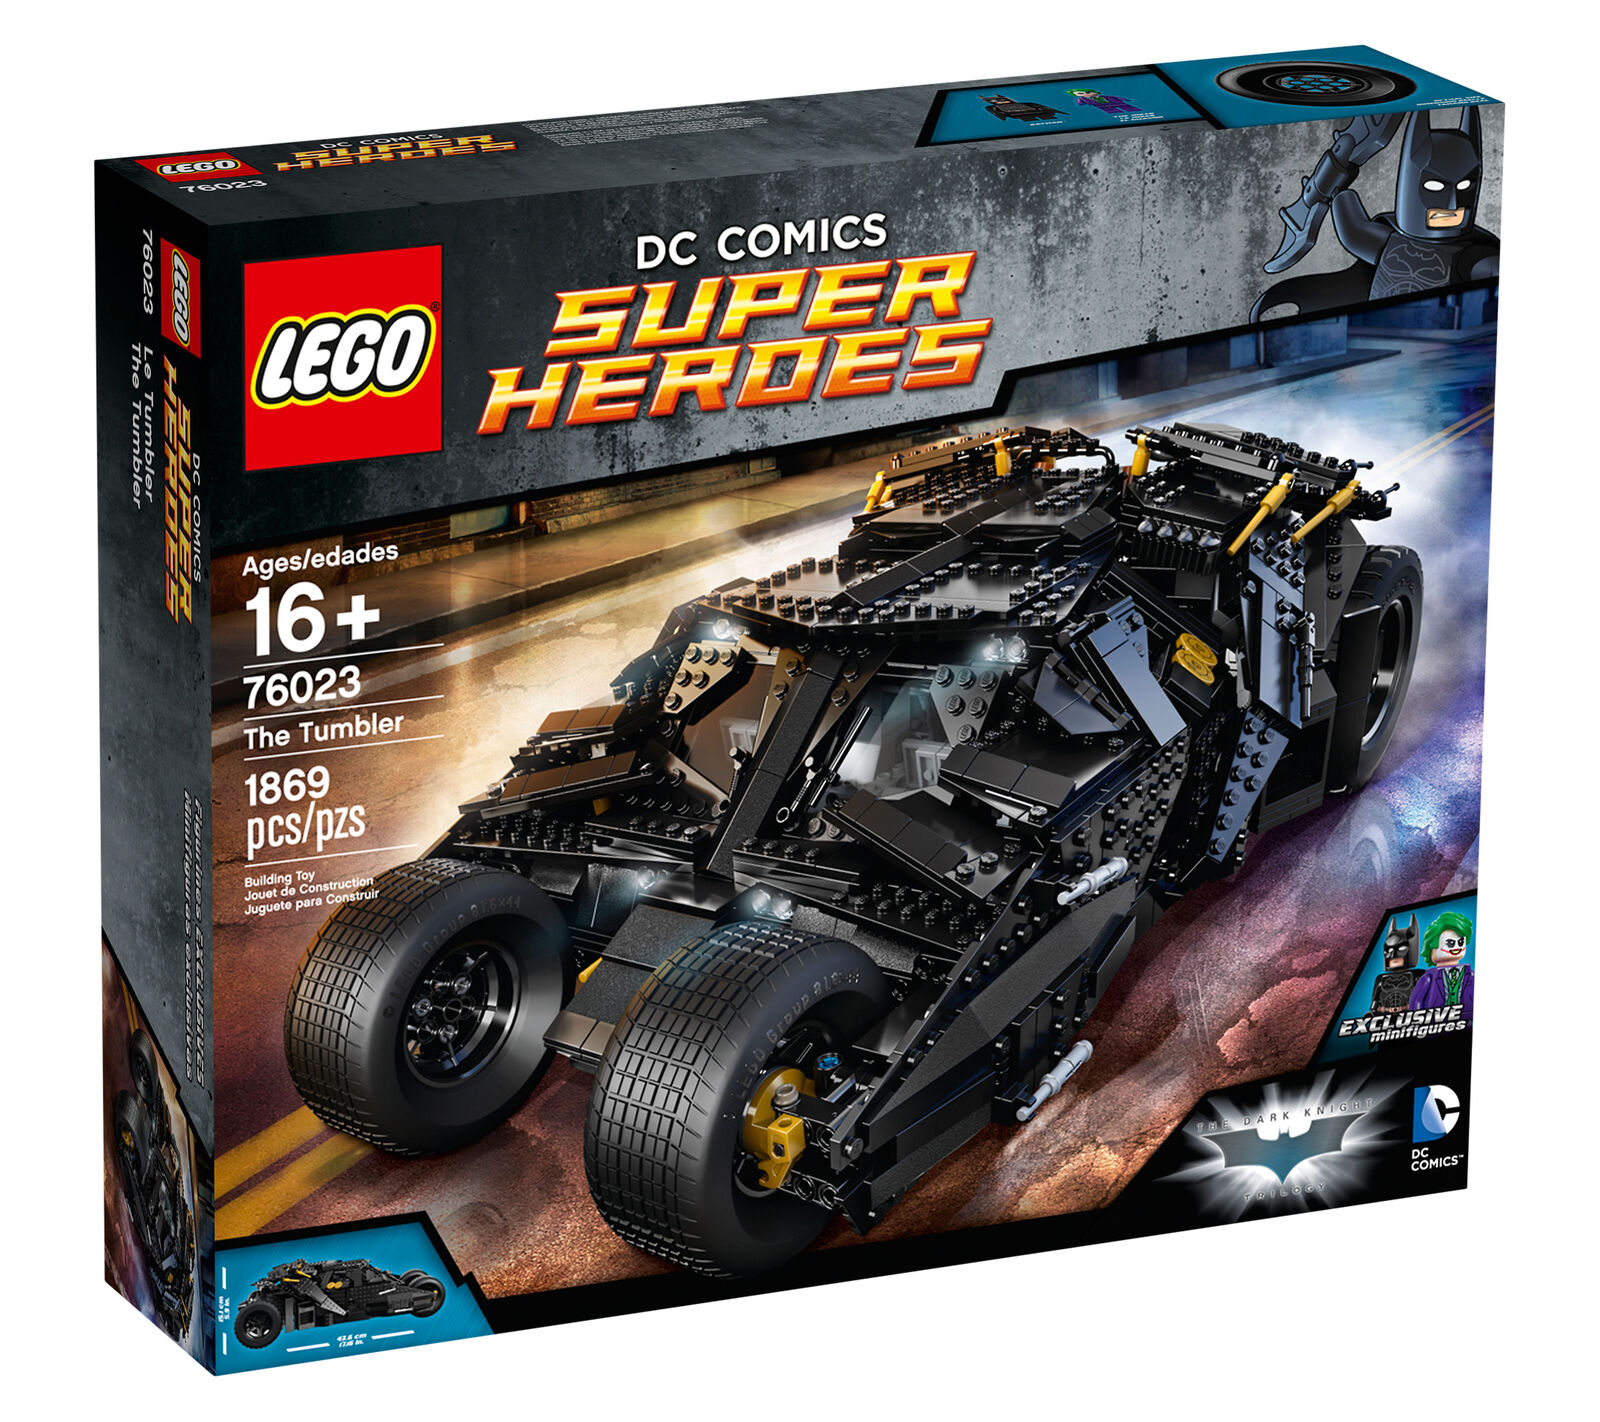 Brand New sealed LEGO Batman The Tumbler set  76023 UCS DC Comics Super Heroes